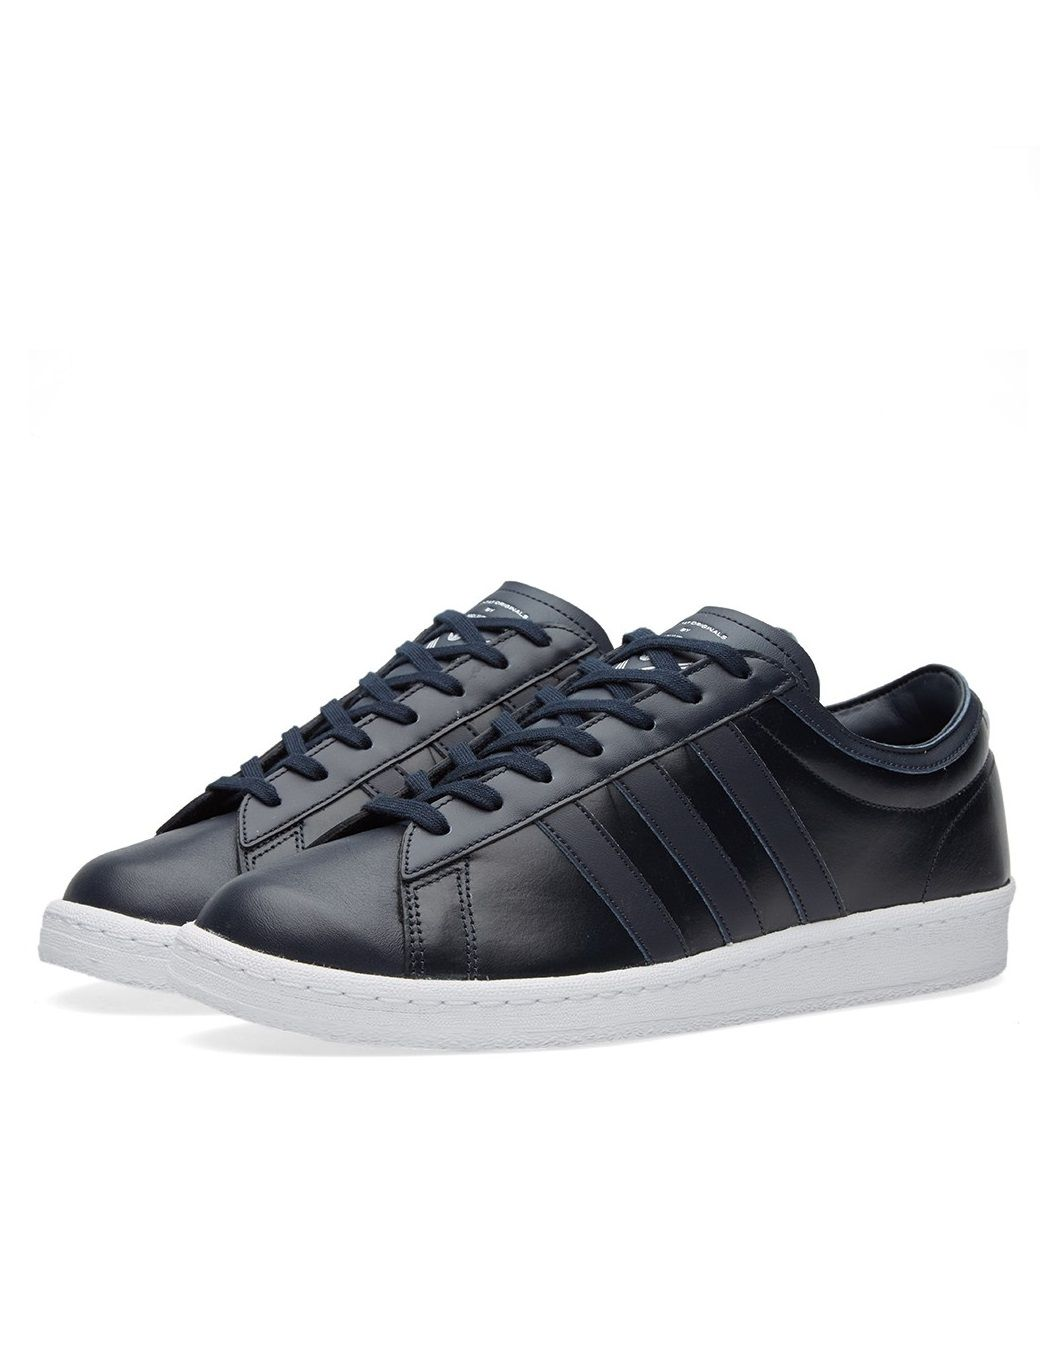 Weiß Mountaineering x  adidas Originals Supergrip  Navy   x Sneakers ... 51c05c